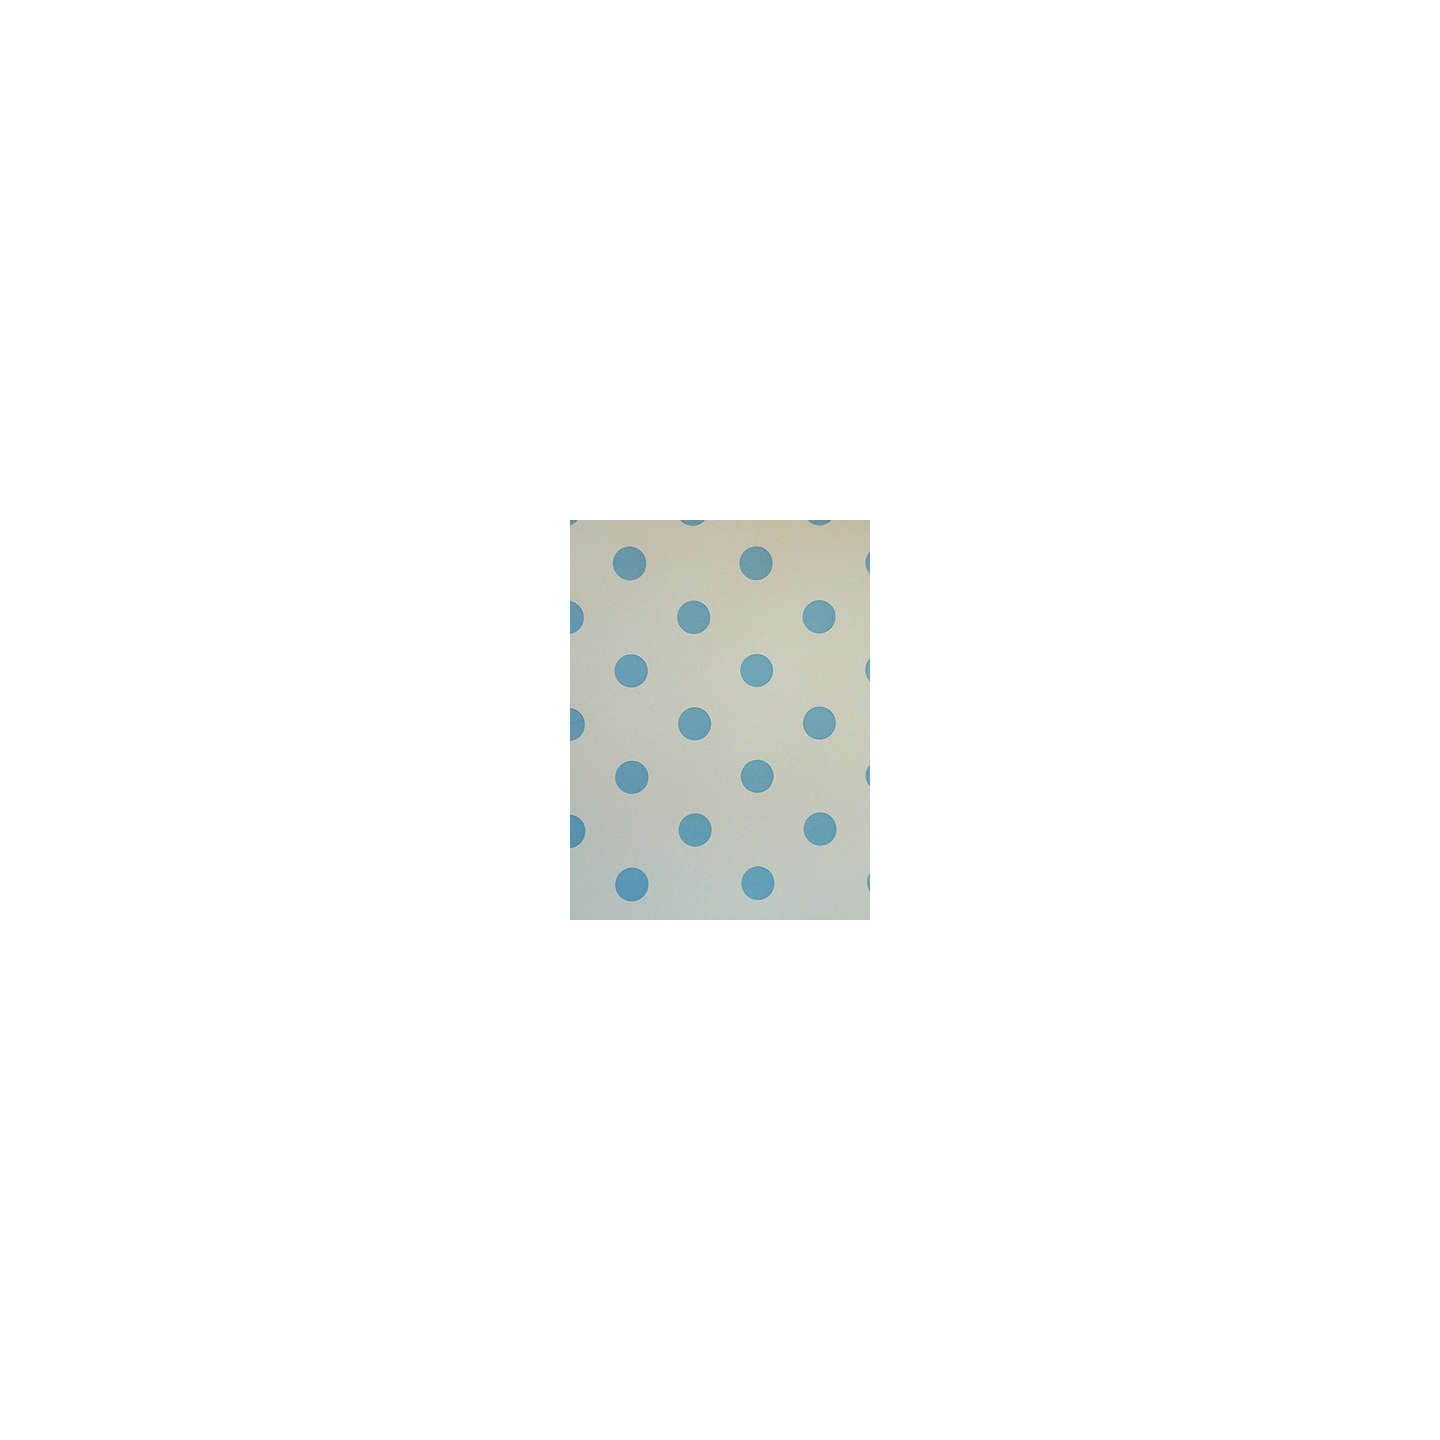 BuyPrestigious Textiles Polka Dot Wallpaper, Chambray, 1940/765 Online at johnlewis.com